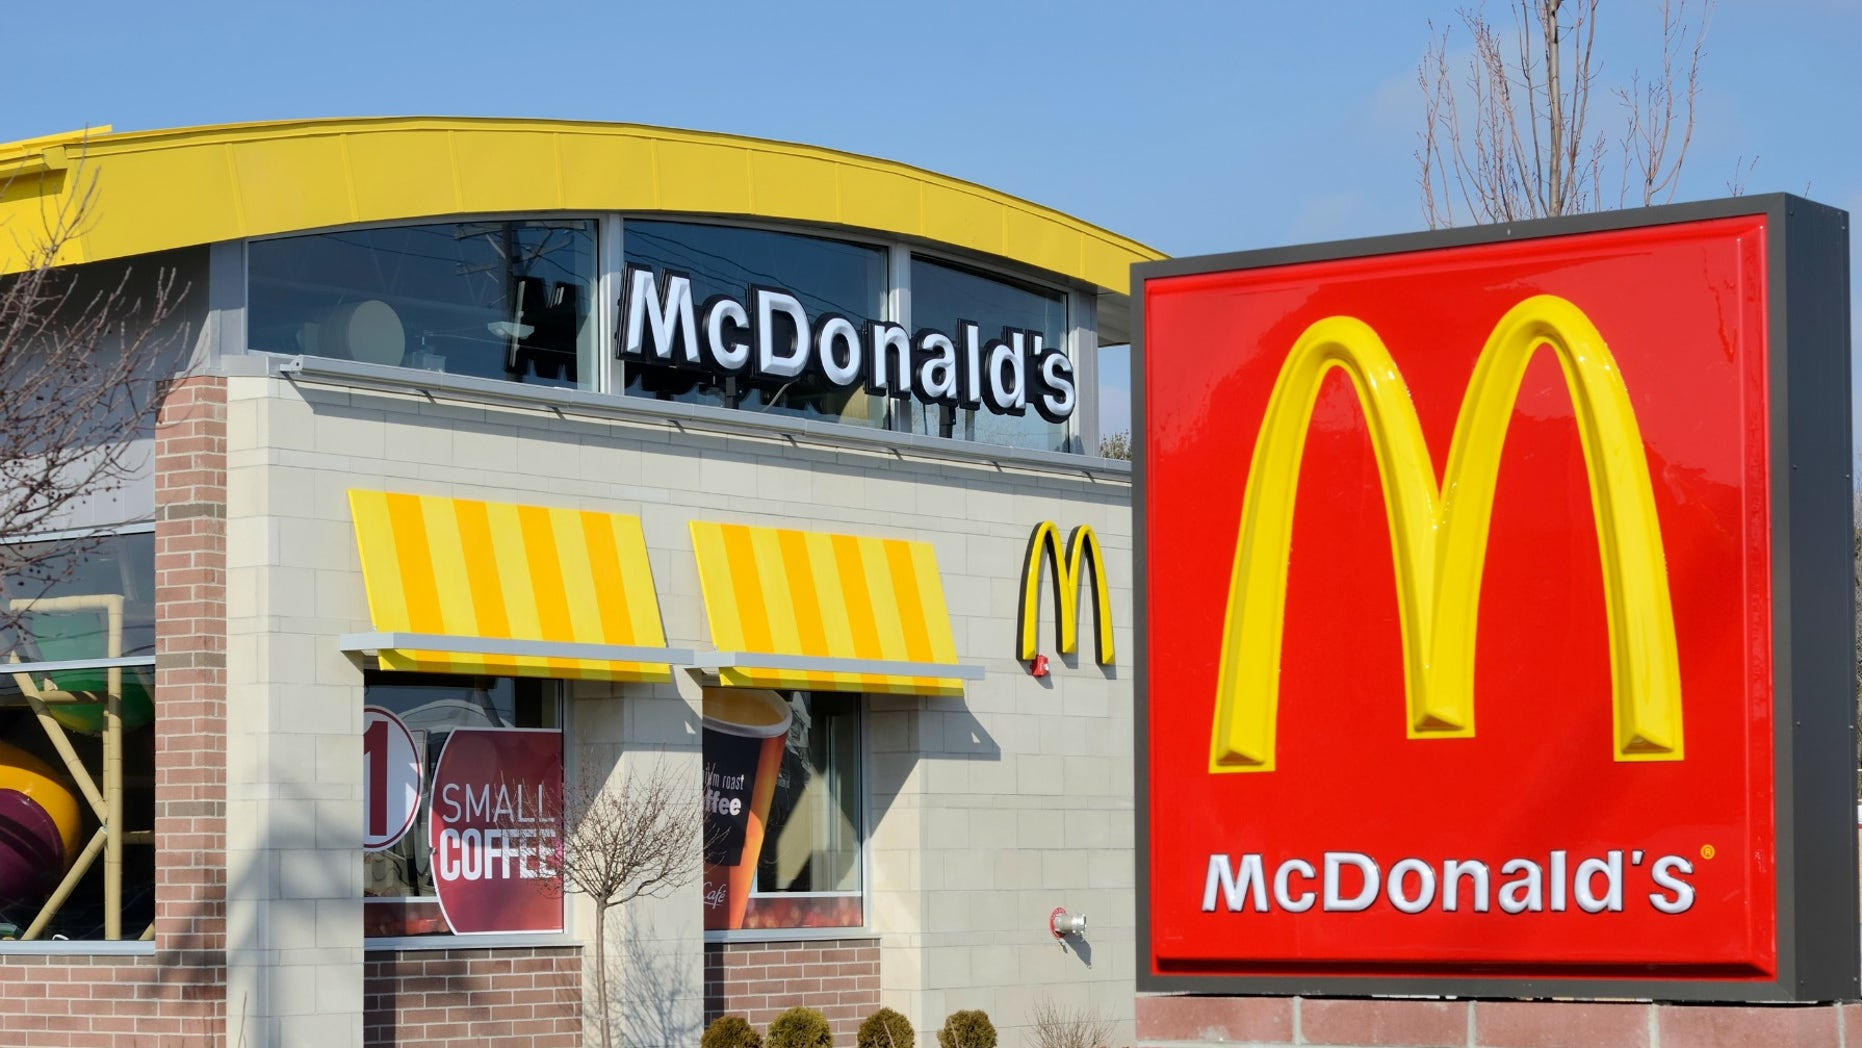 A fight broke out at McDonald's after a group of teens were asked to leave the kid's play area.